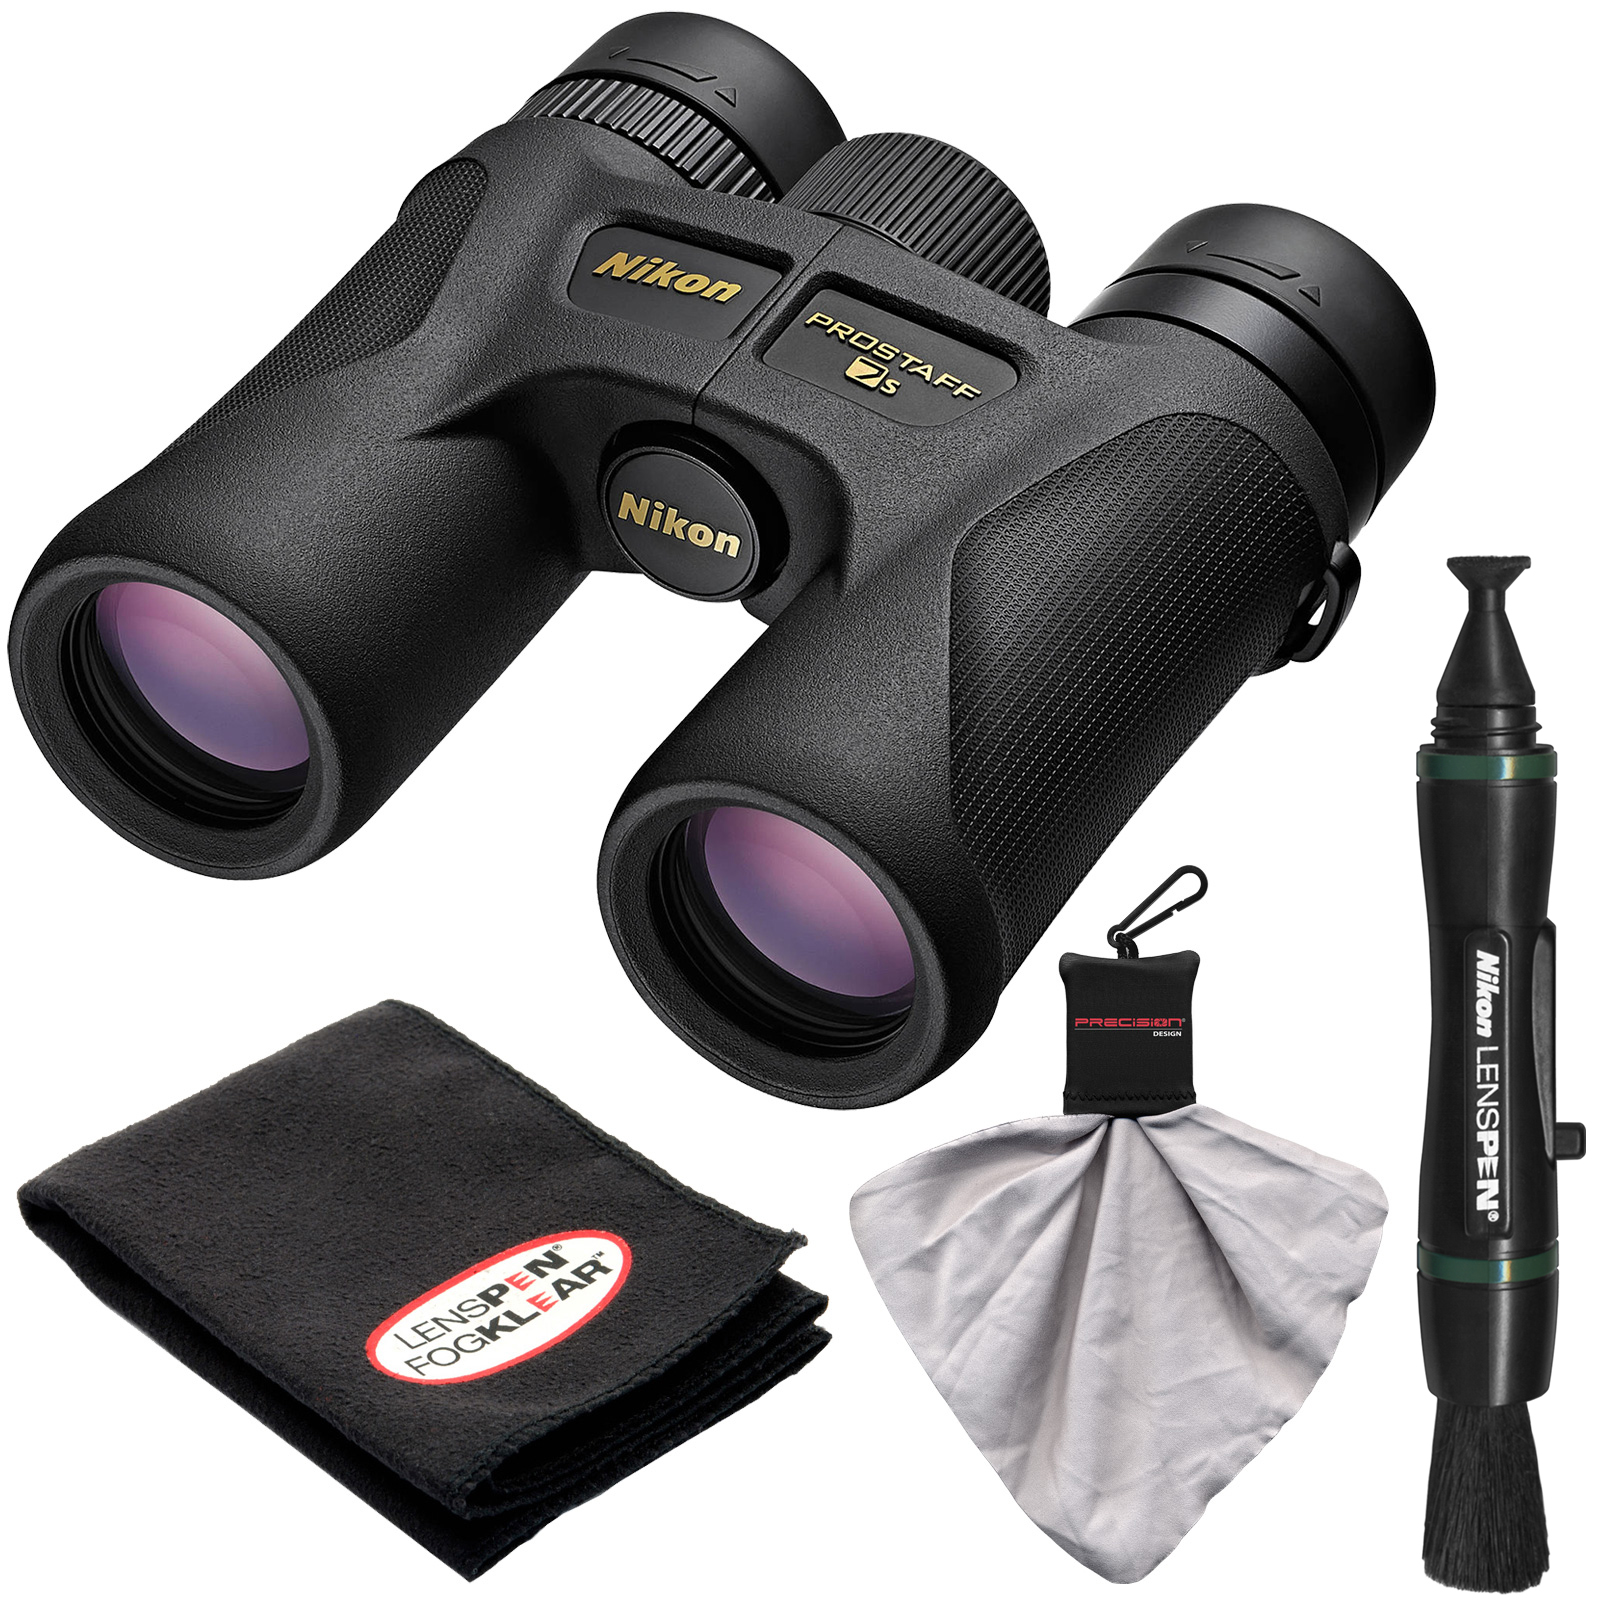 Nikon Prostaff 7S 8x30 ATB Waterproof/Fogproof Binoculars with Case   Cleaning   Accessory Kit